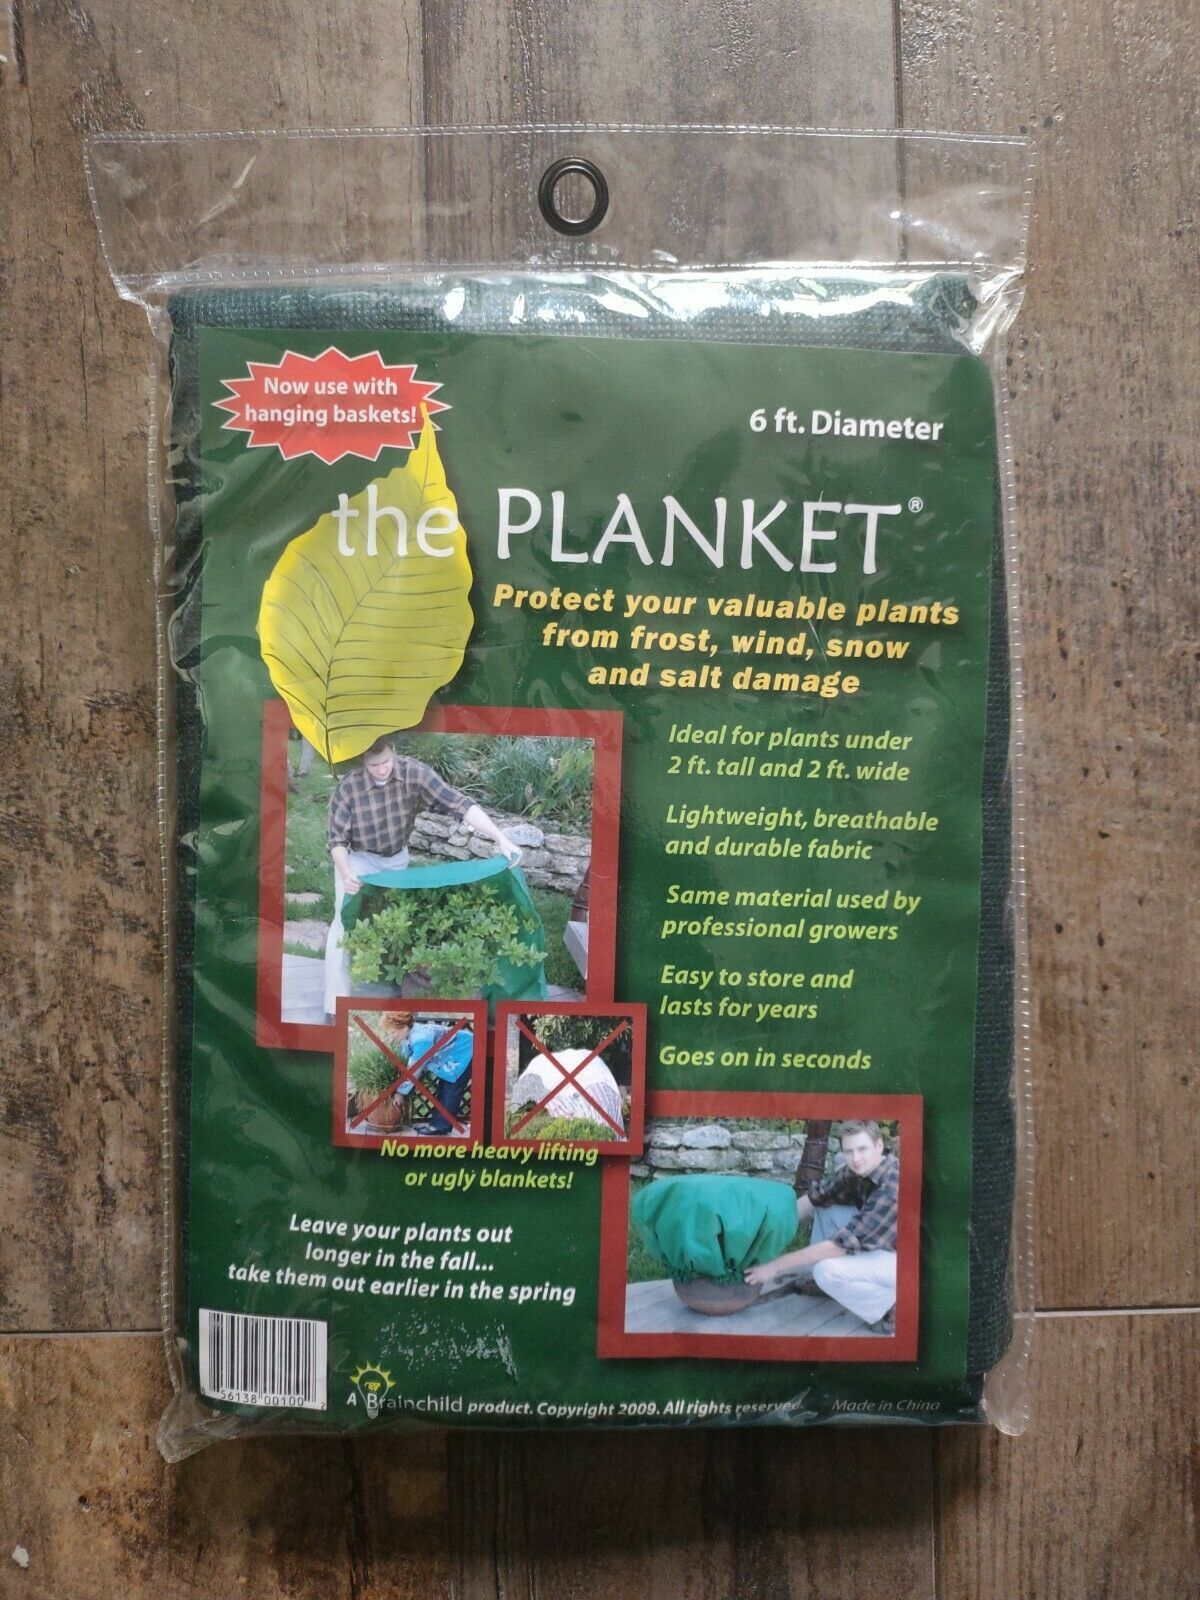 The Planket Frost Protection Plant Cover 6 ft Round New in Bag Potted Hanging